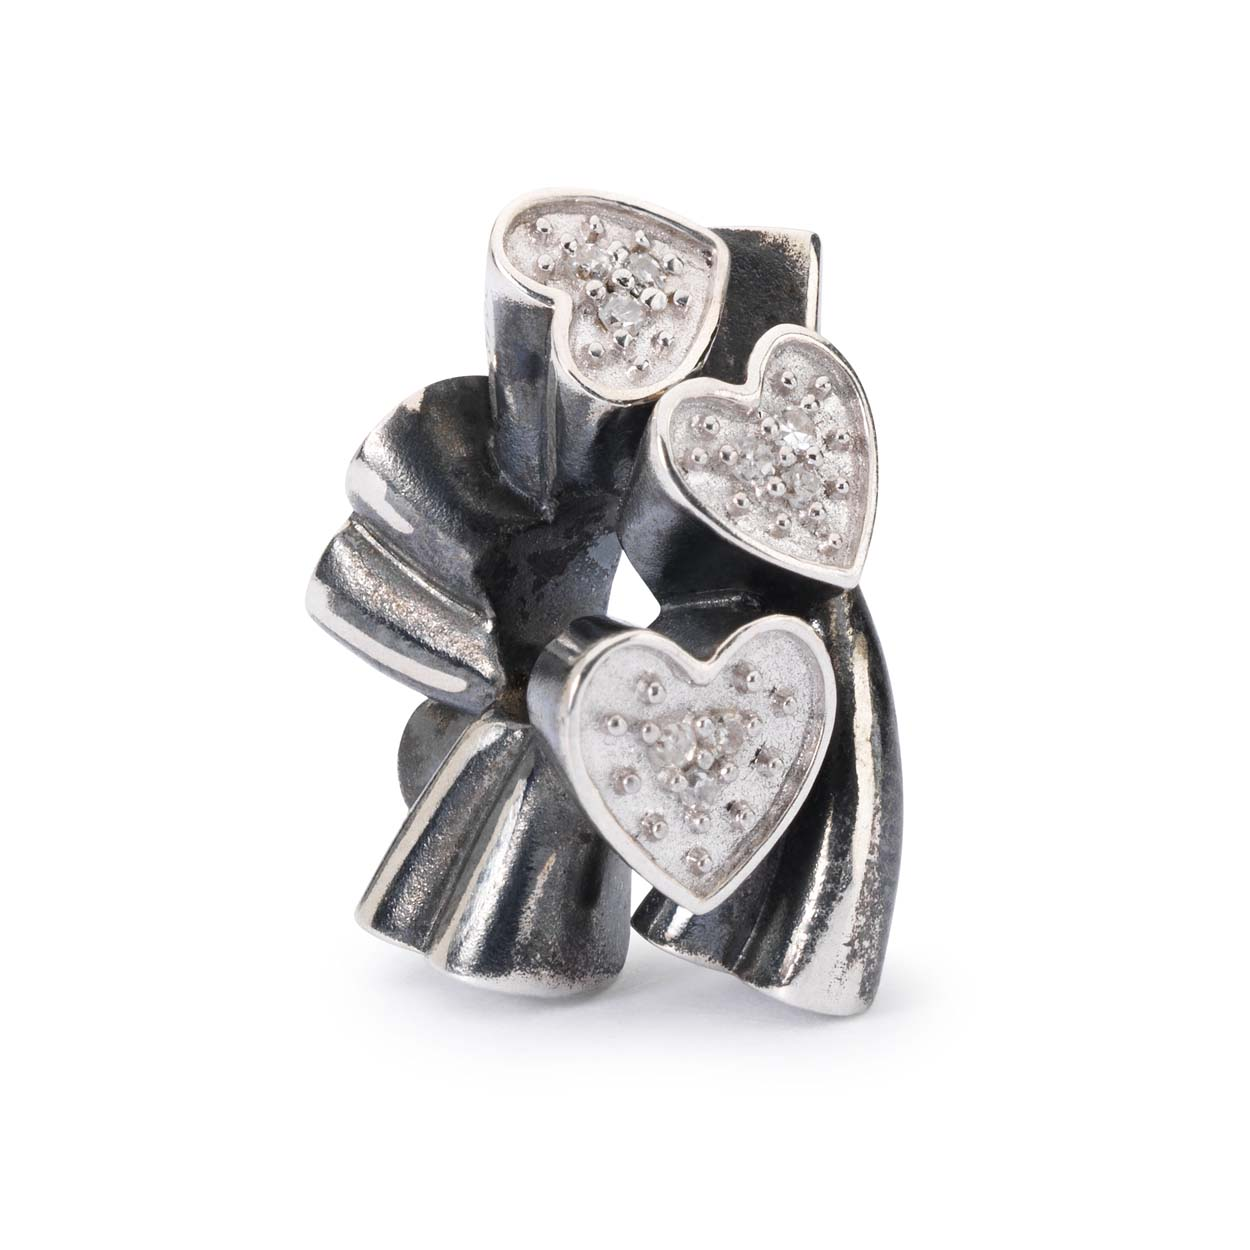 TAGBE-00136 Blooming Hearts a